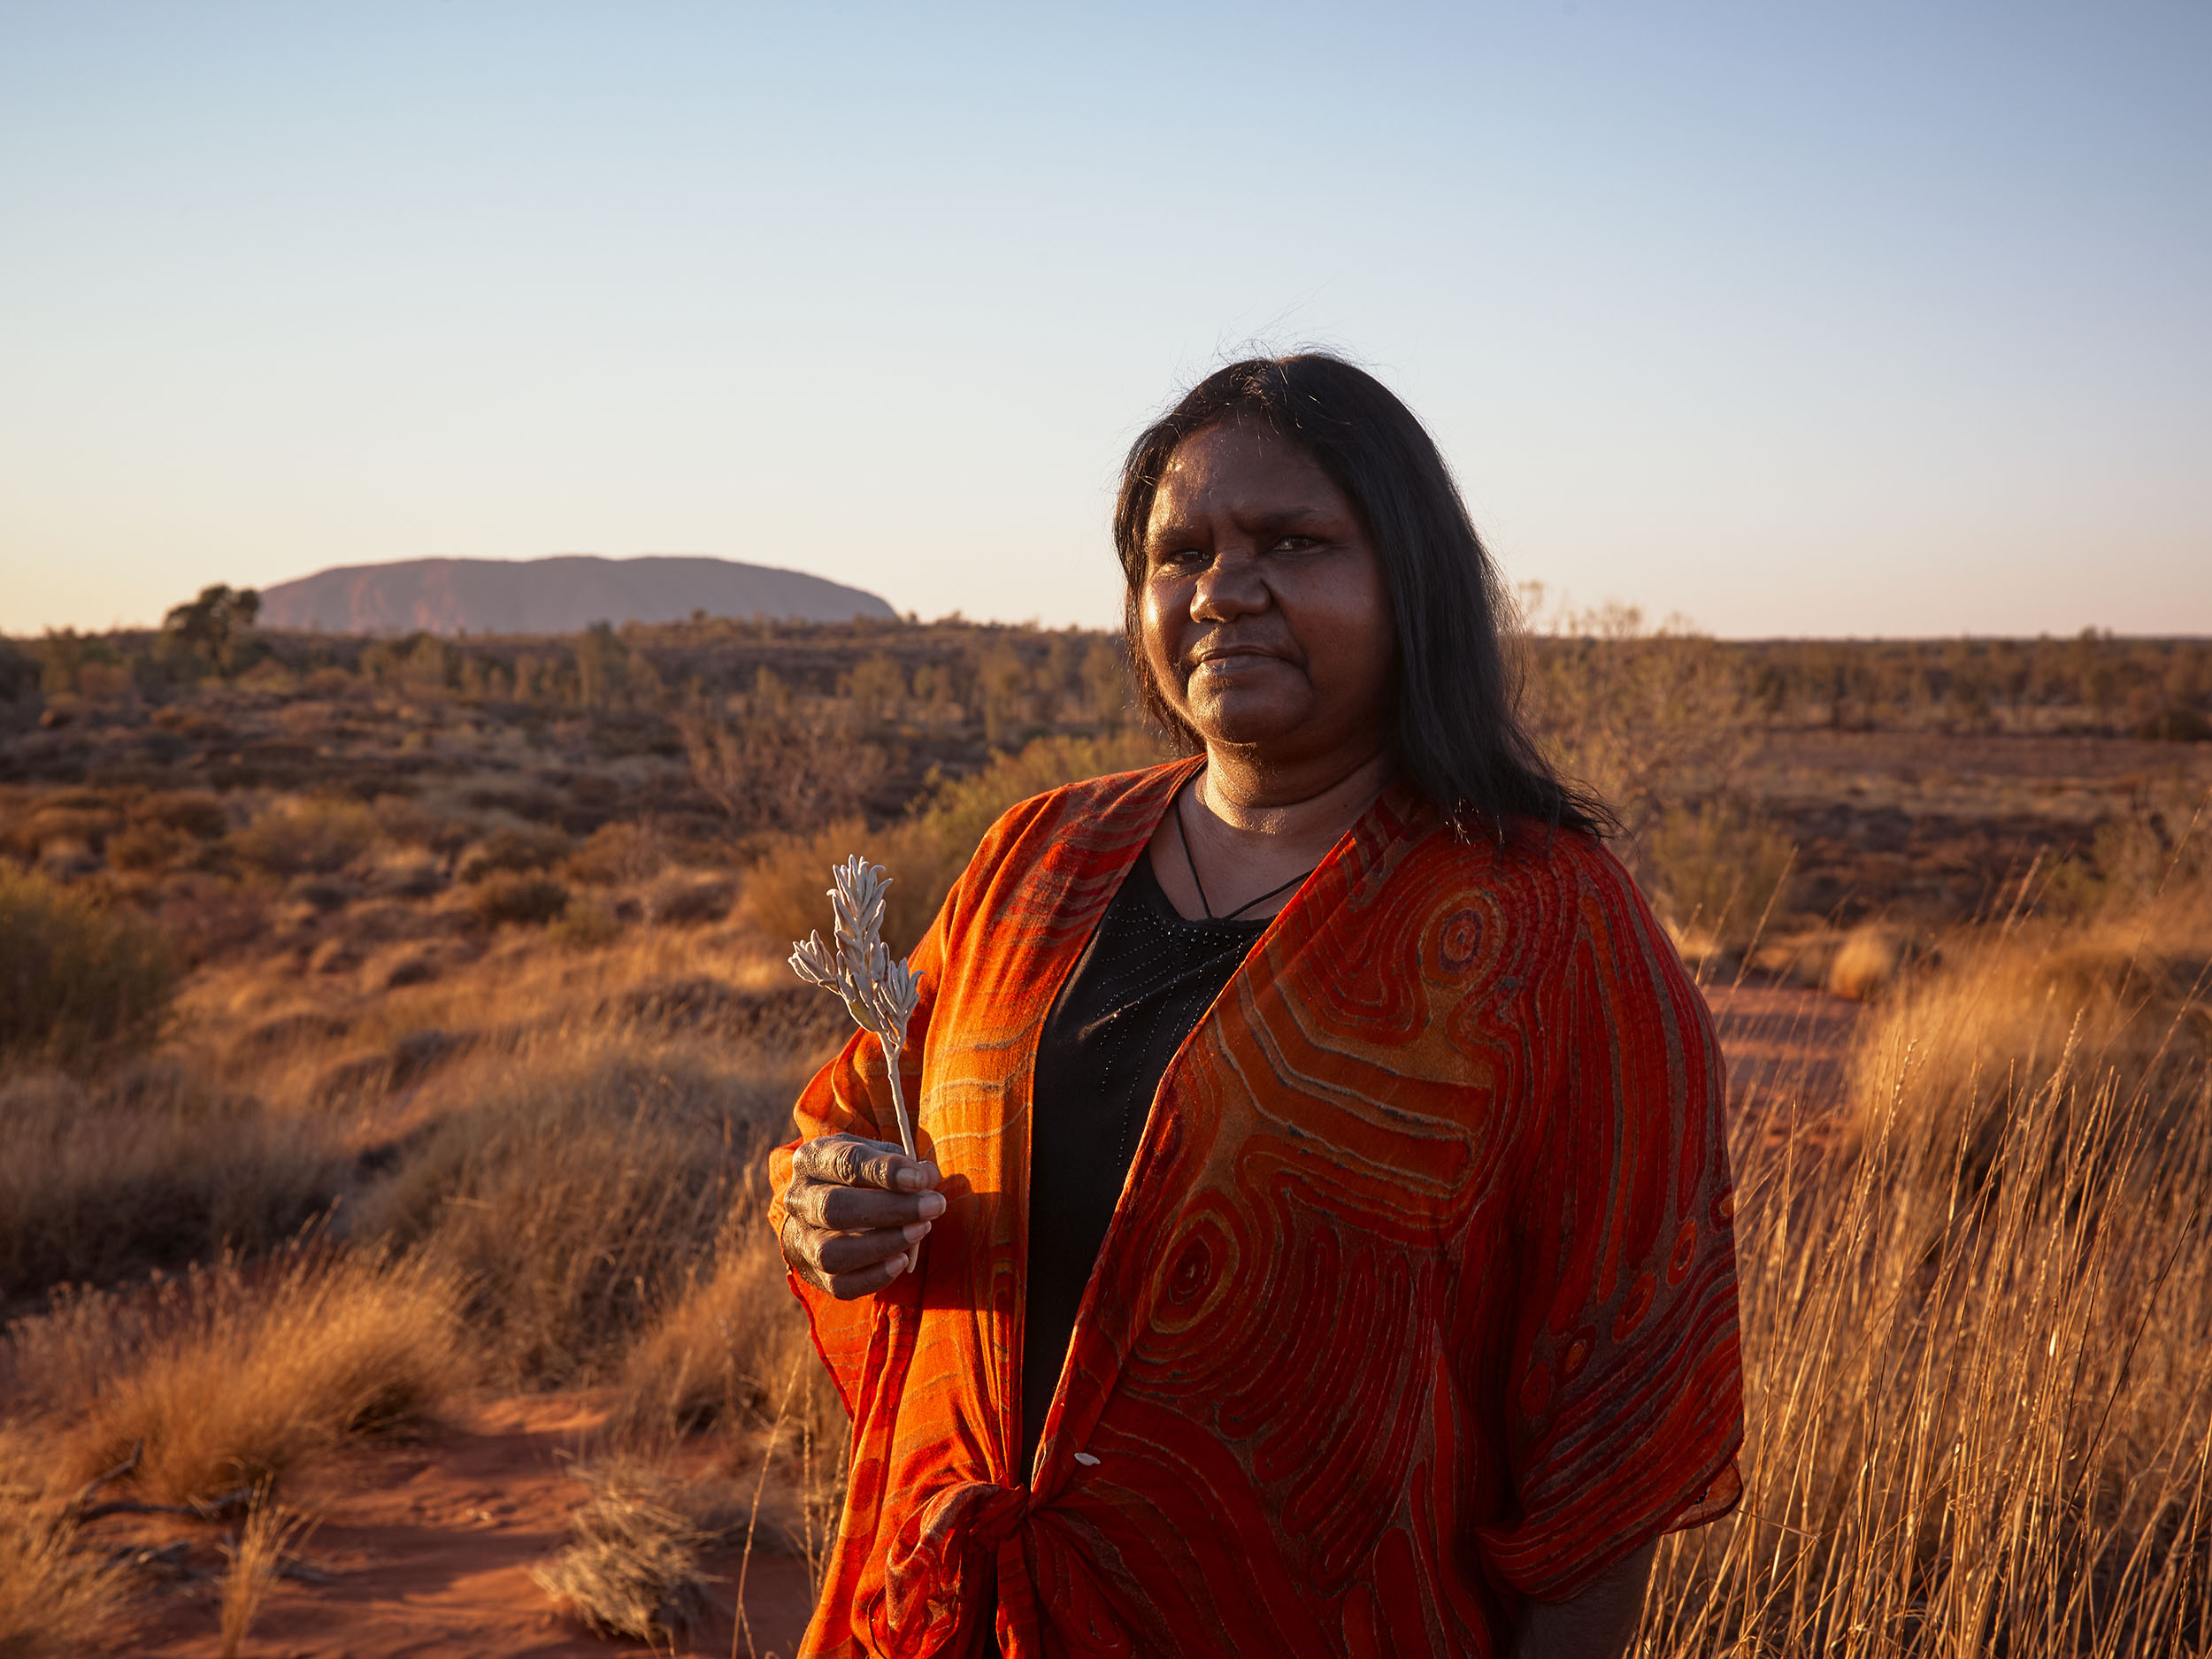 An Anangu woman holds a flower with Uluru in the background